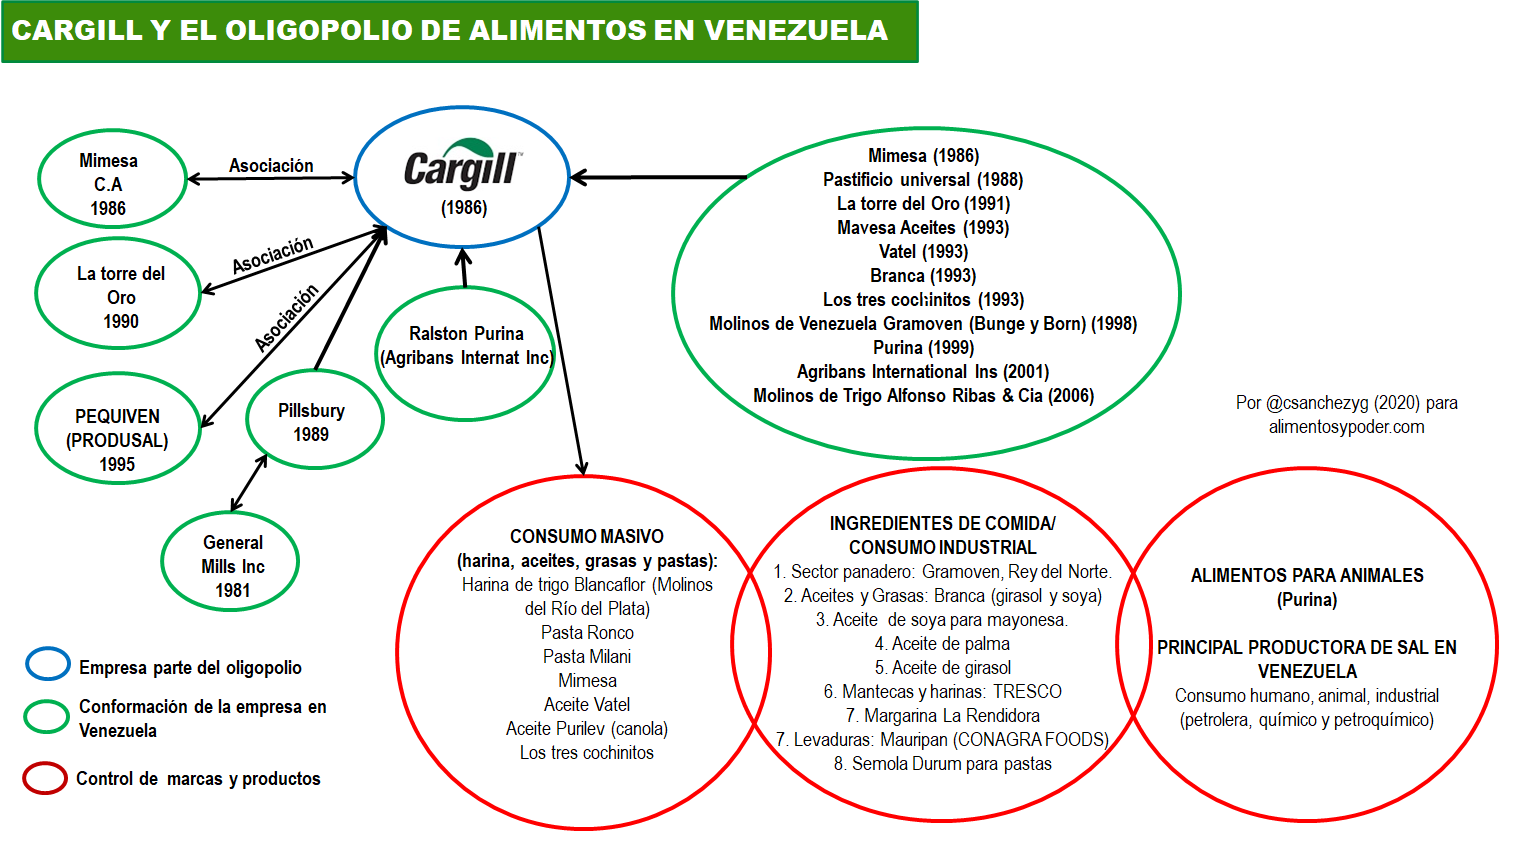 Cargill and the cycle of oligopolization and transnationalization in Venezuela (Photo: Alimentos y Poder)